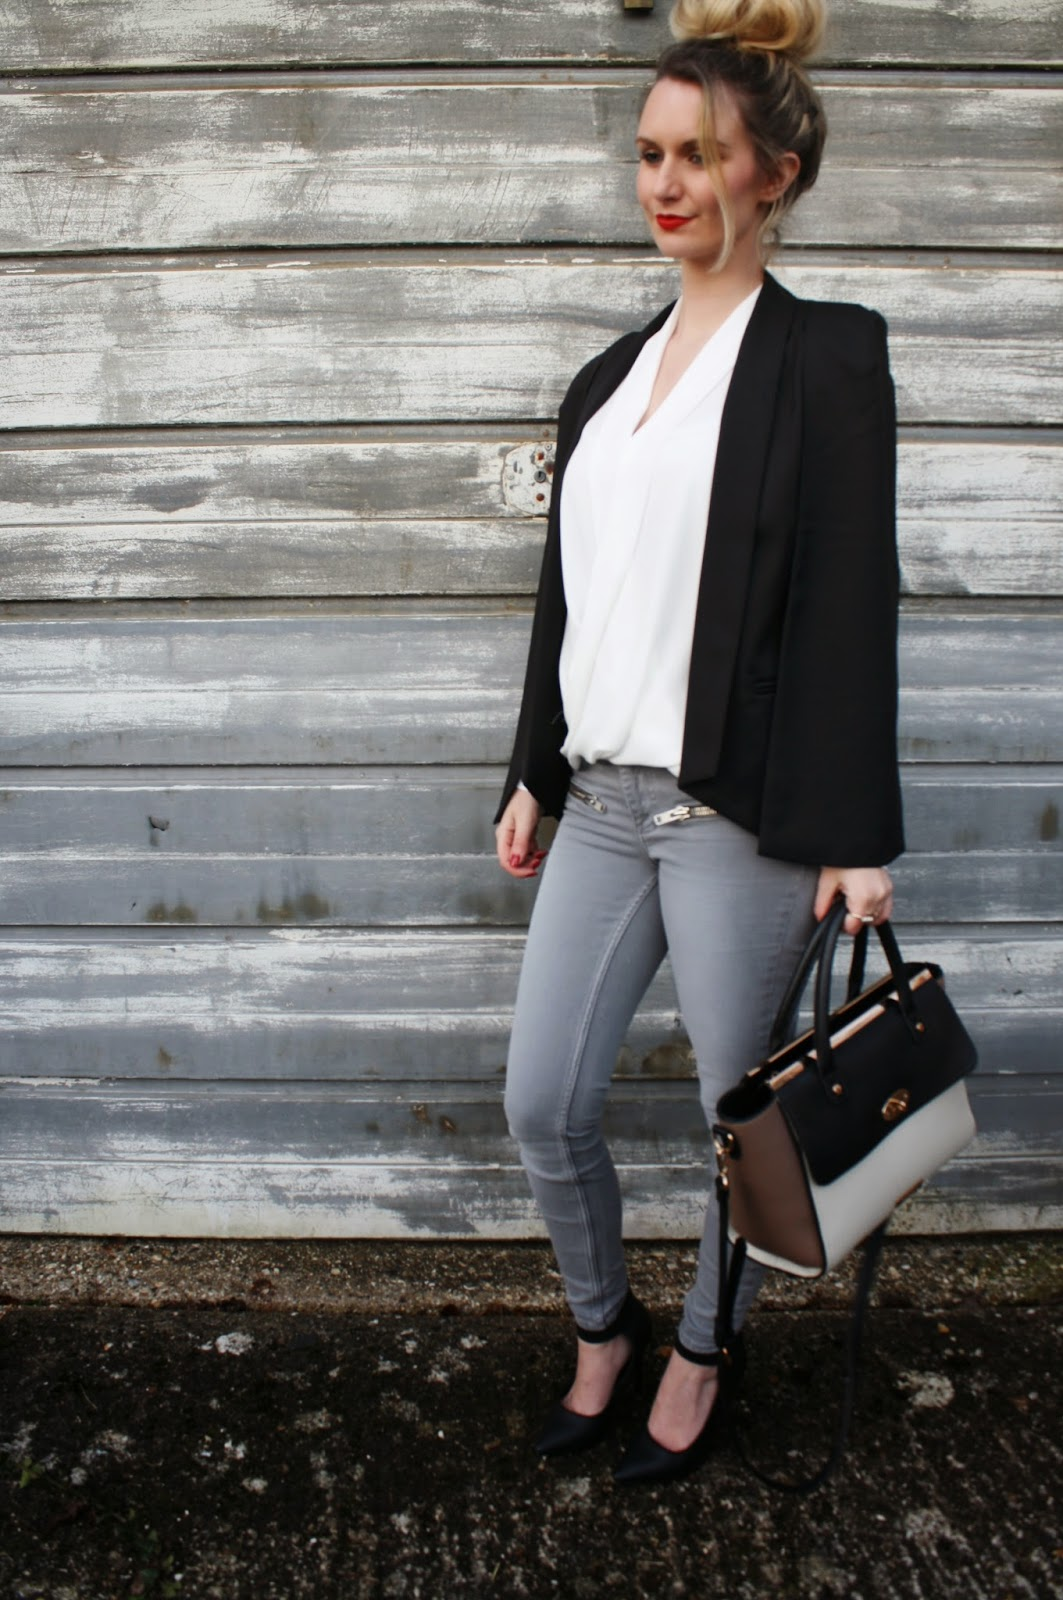 fashion blogger, mode madeleine, city chic, outfit, ootd, monochrome, ss15, trend, styling, stylist, maddie magpie